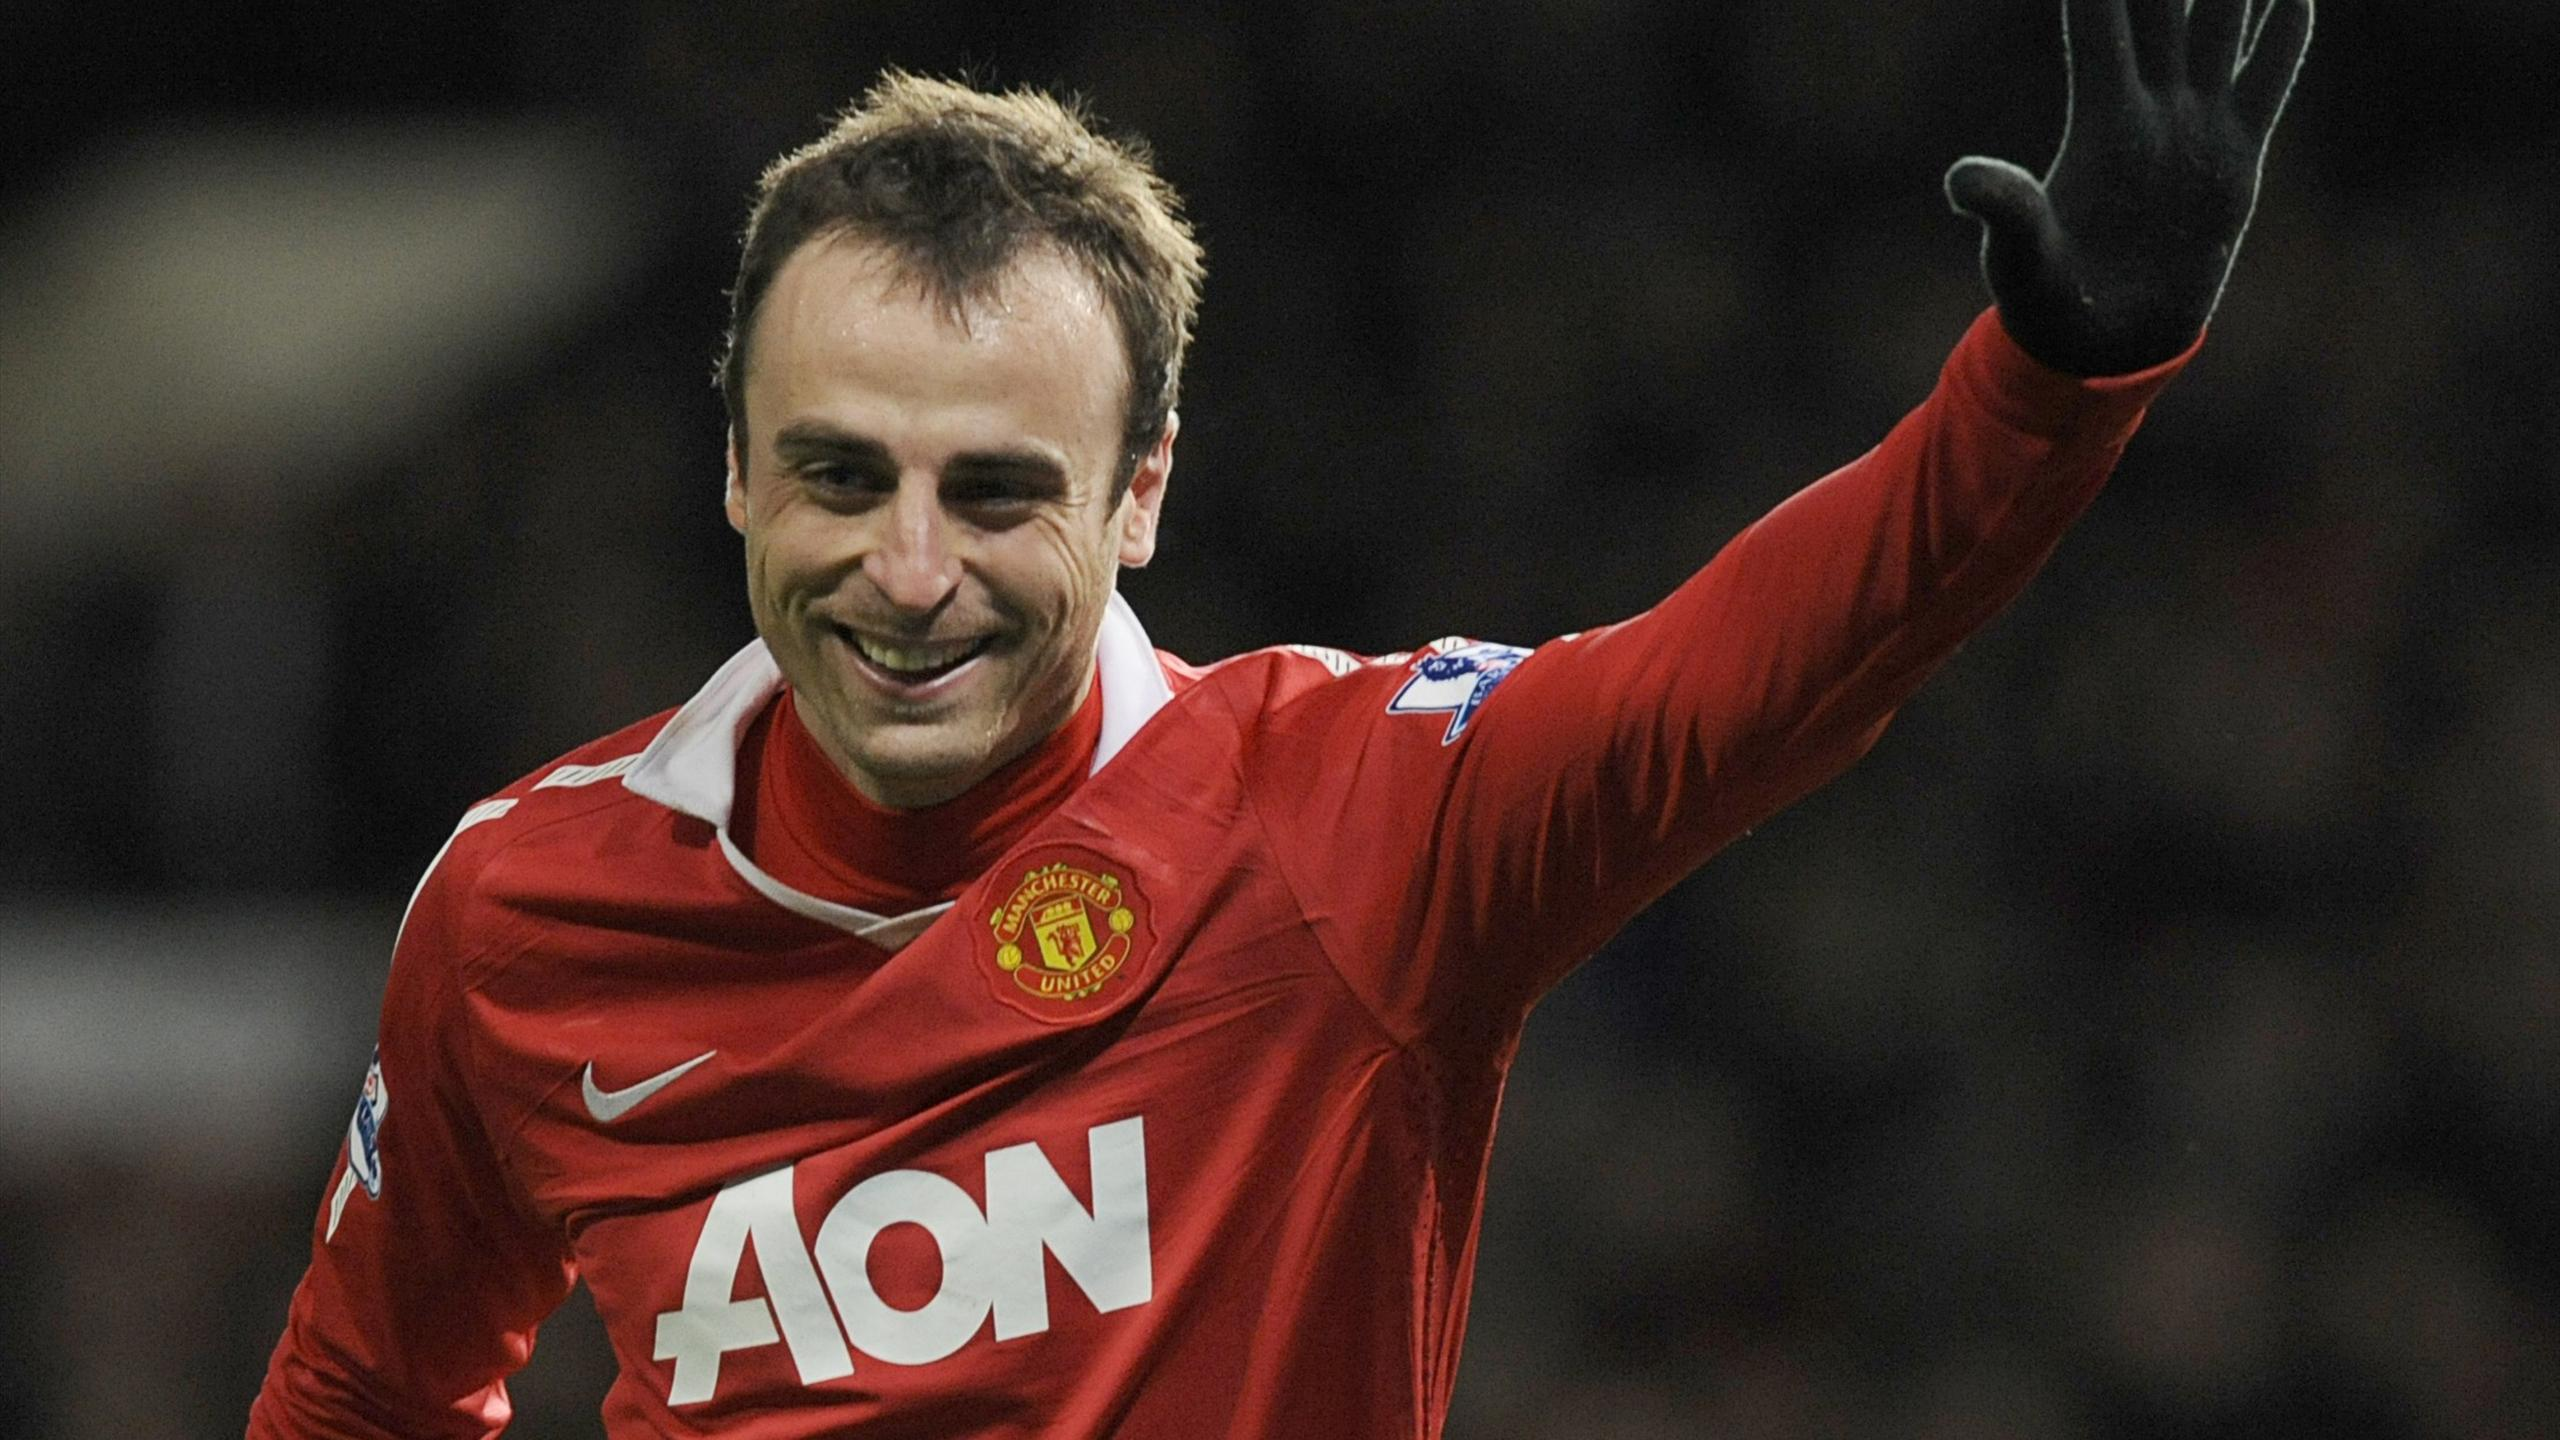 Dimitar Berbatov in his days with Manchester United